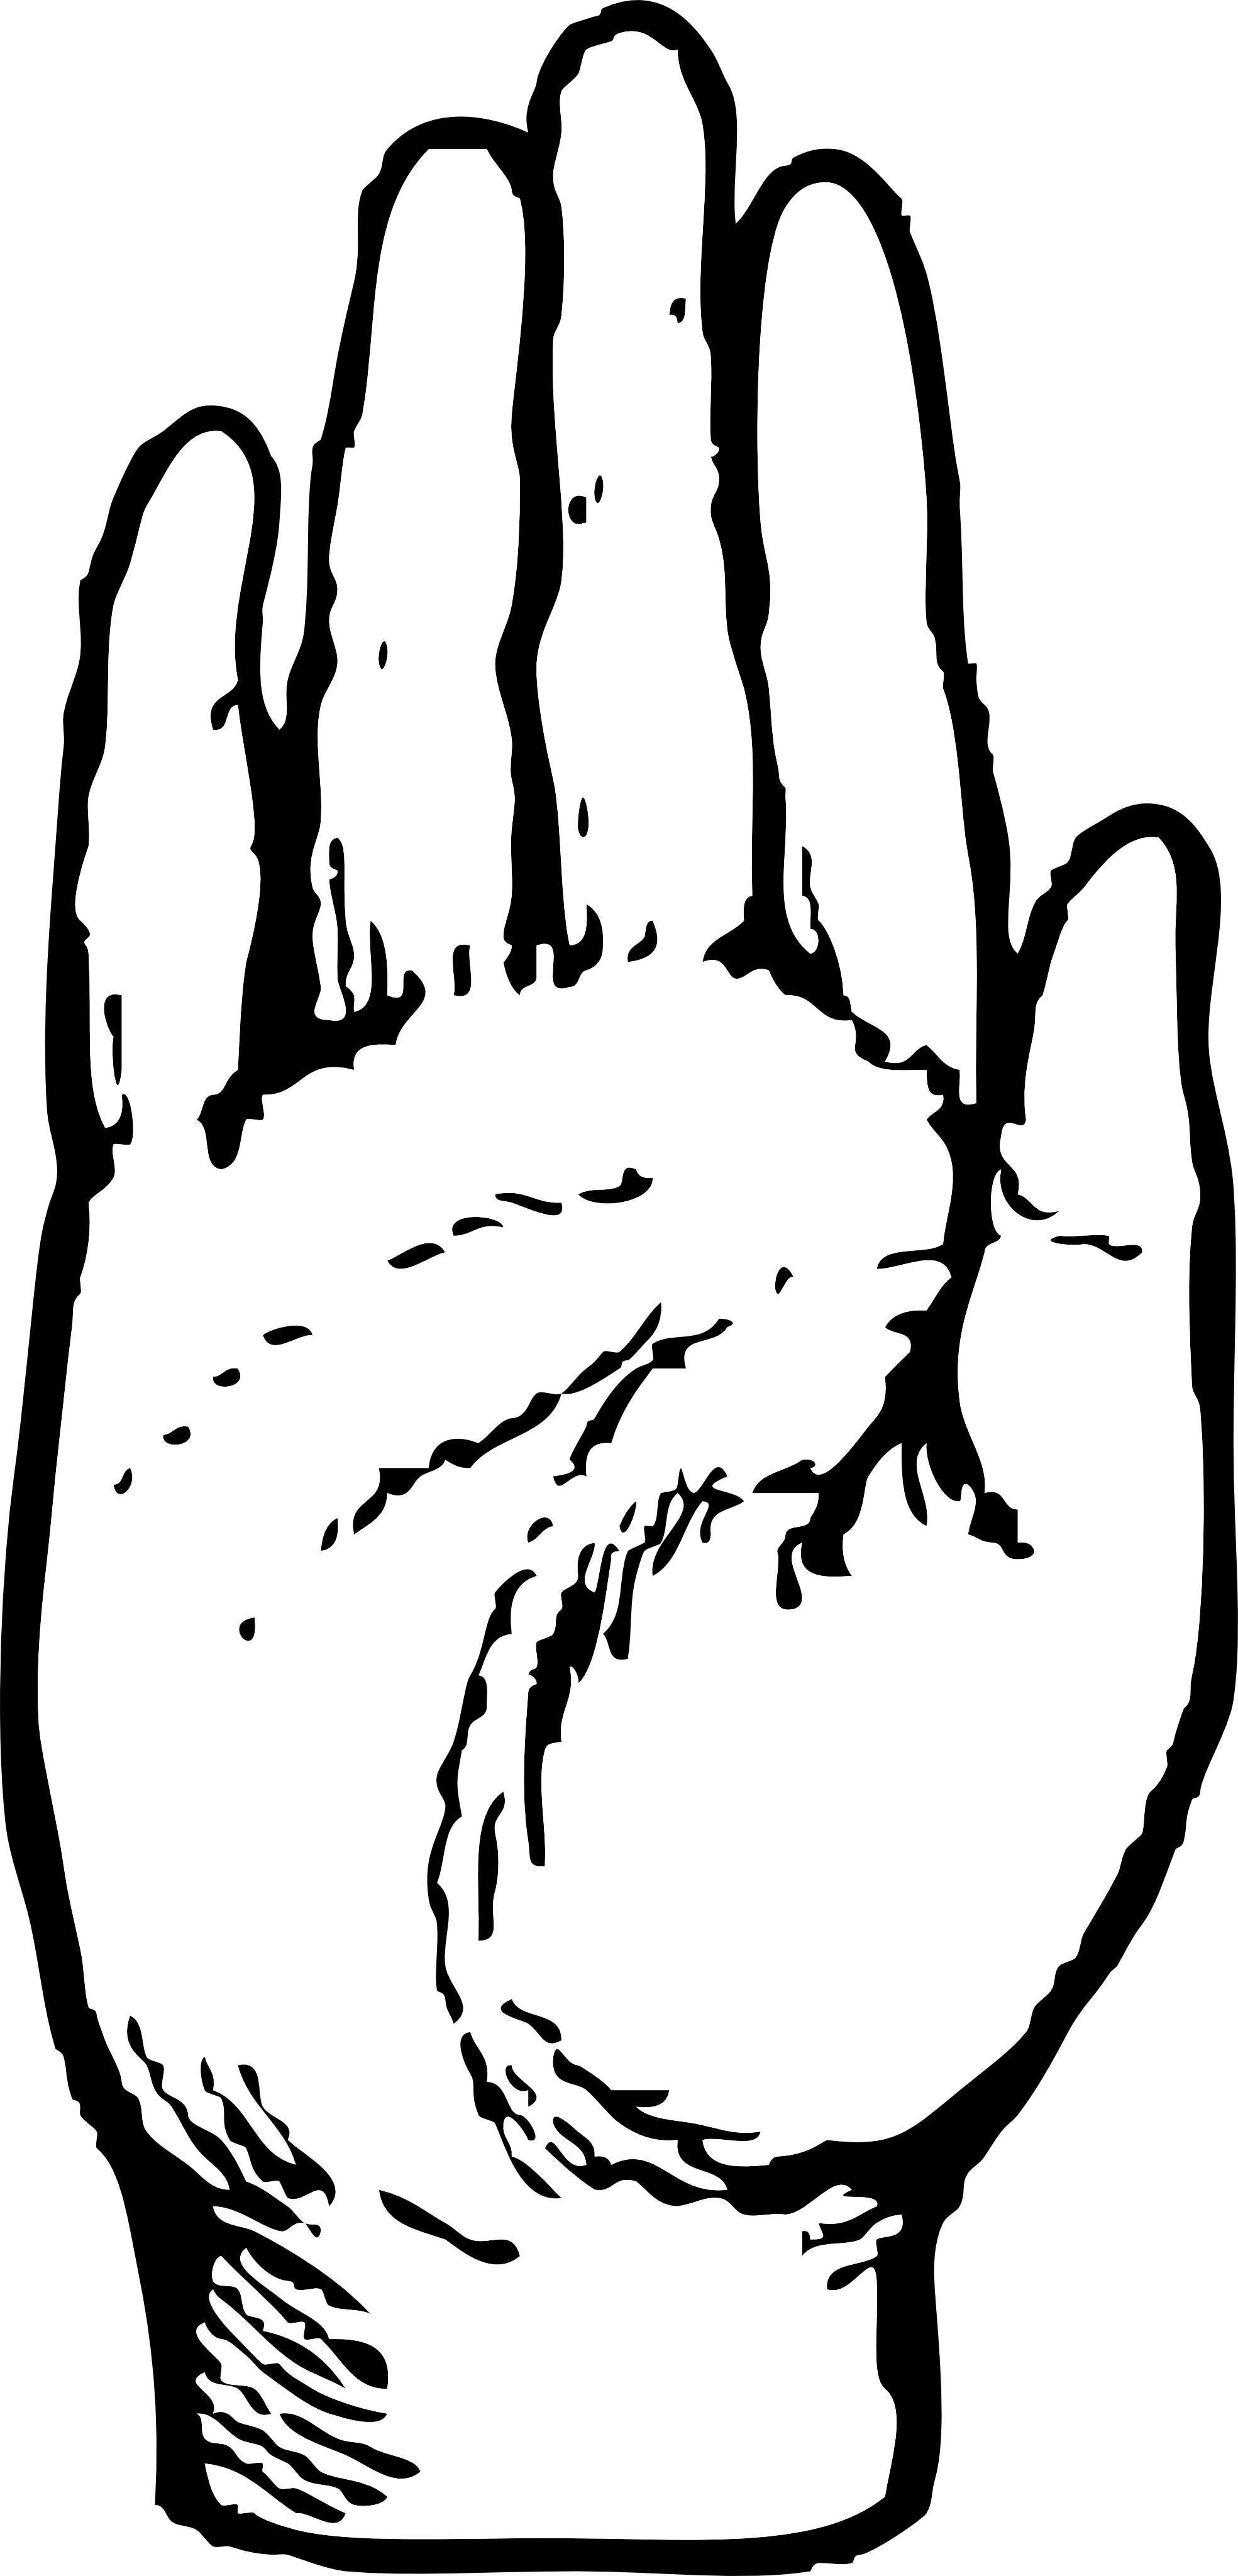 1969x4098 Hand Clipart Black And White Many Interesting Cliparts